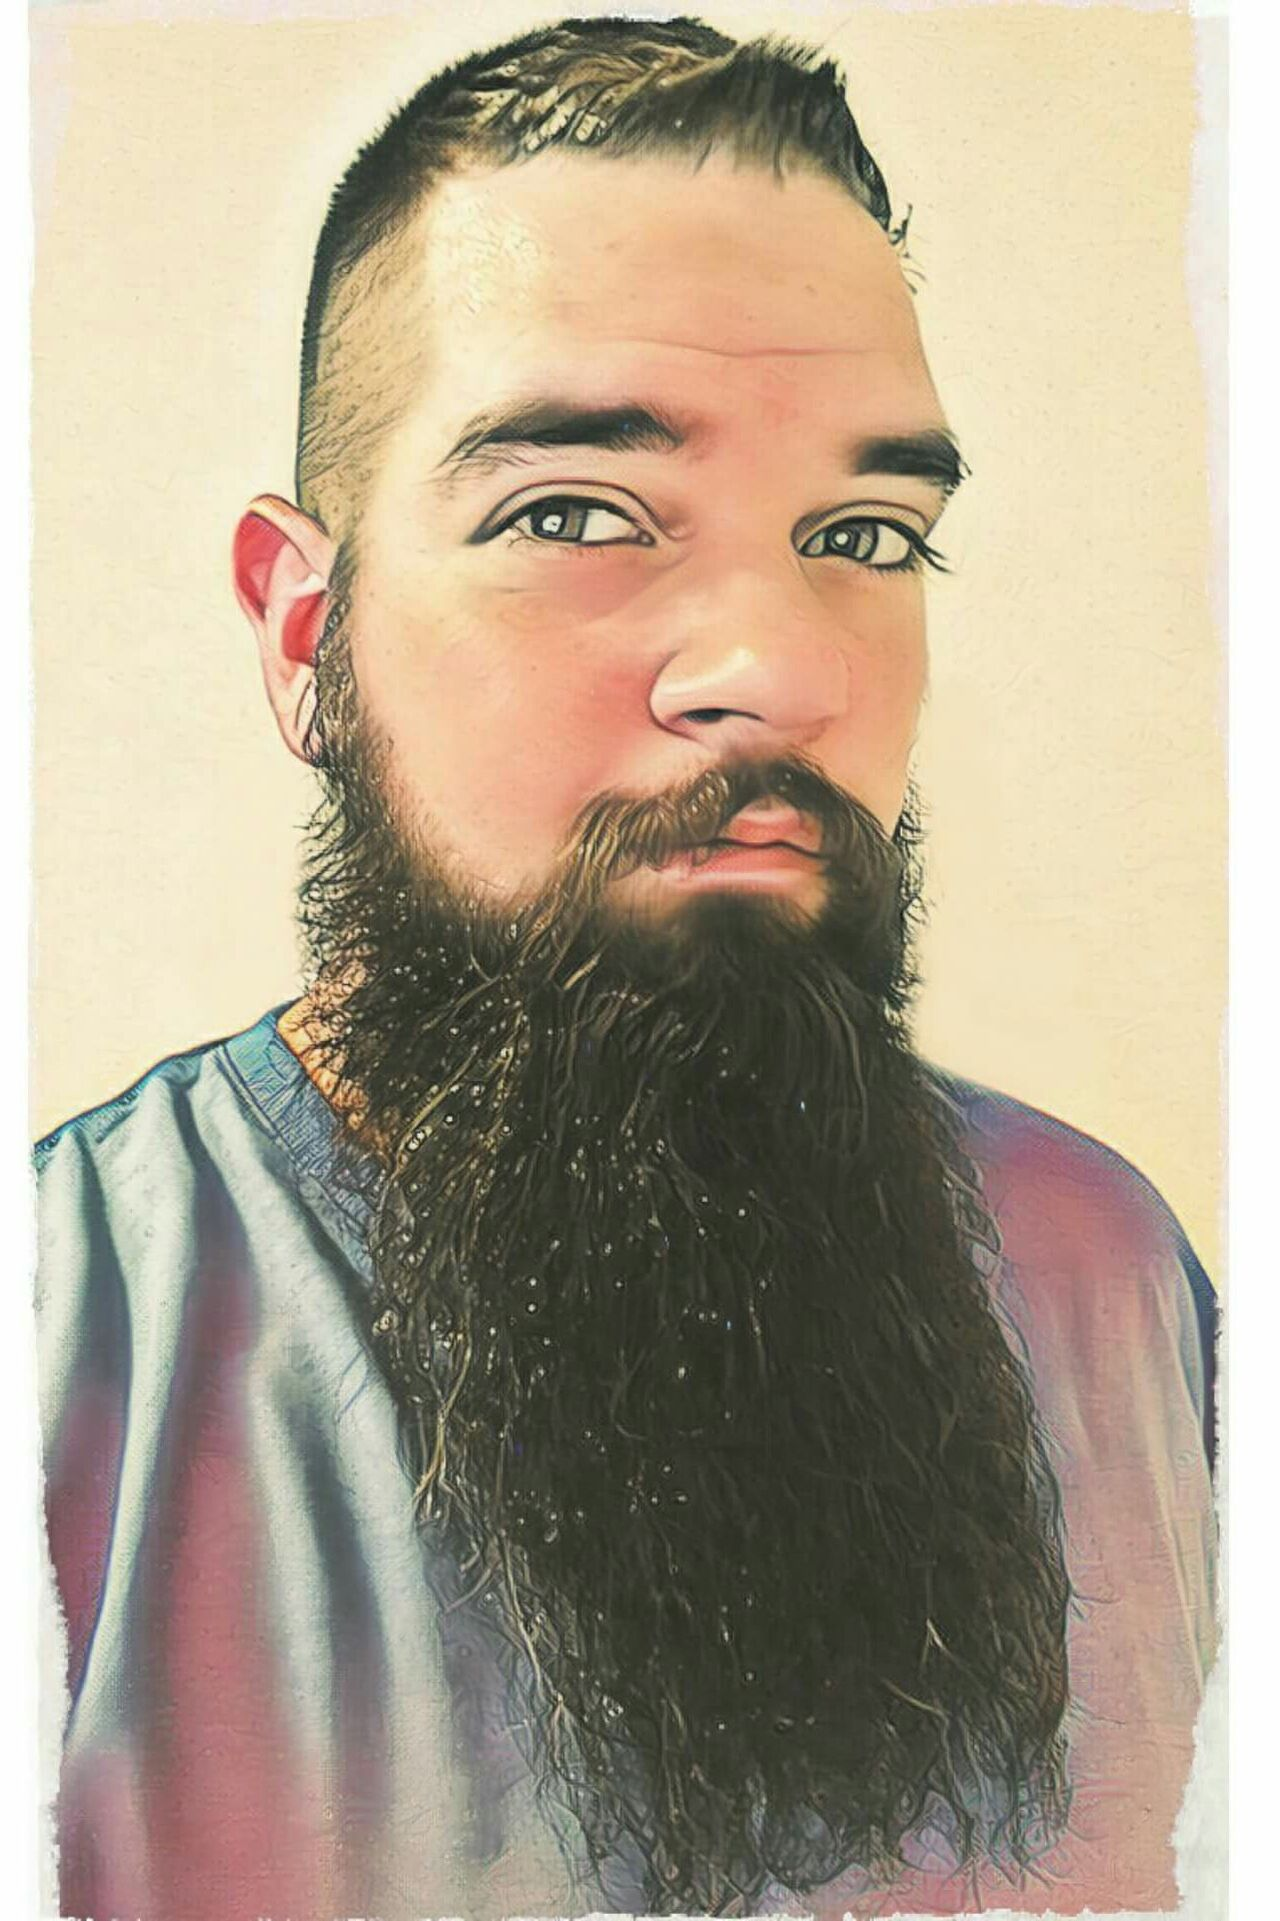 Beard Only Men Beard Young Adult One Person One Man Only Looking At Camera Portrait Front View Bearded Painting